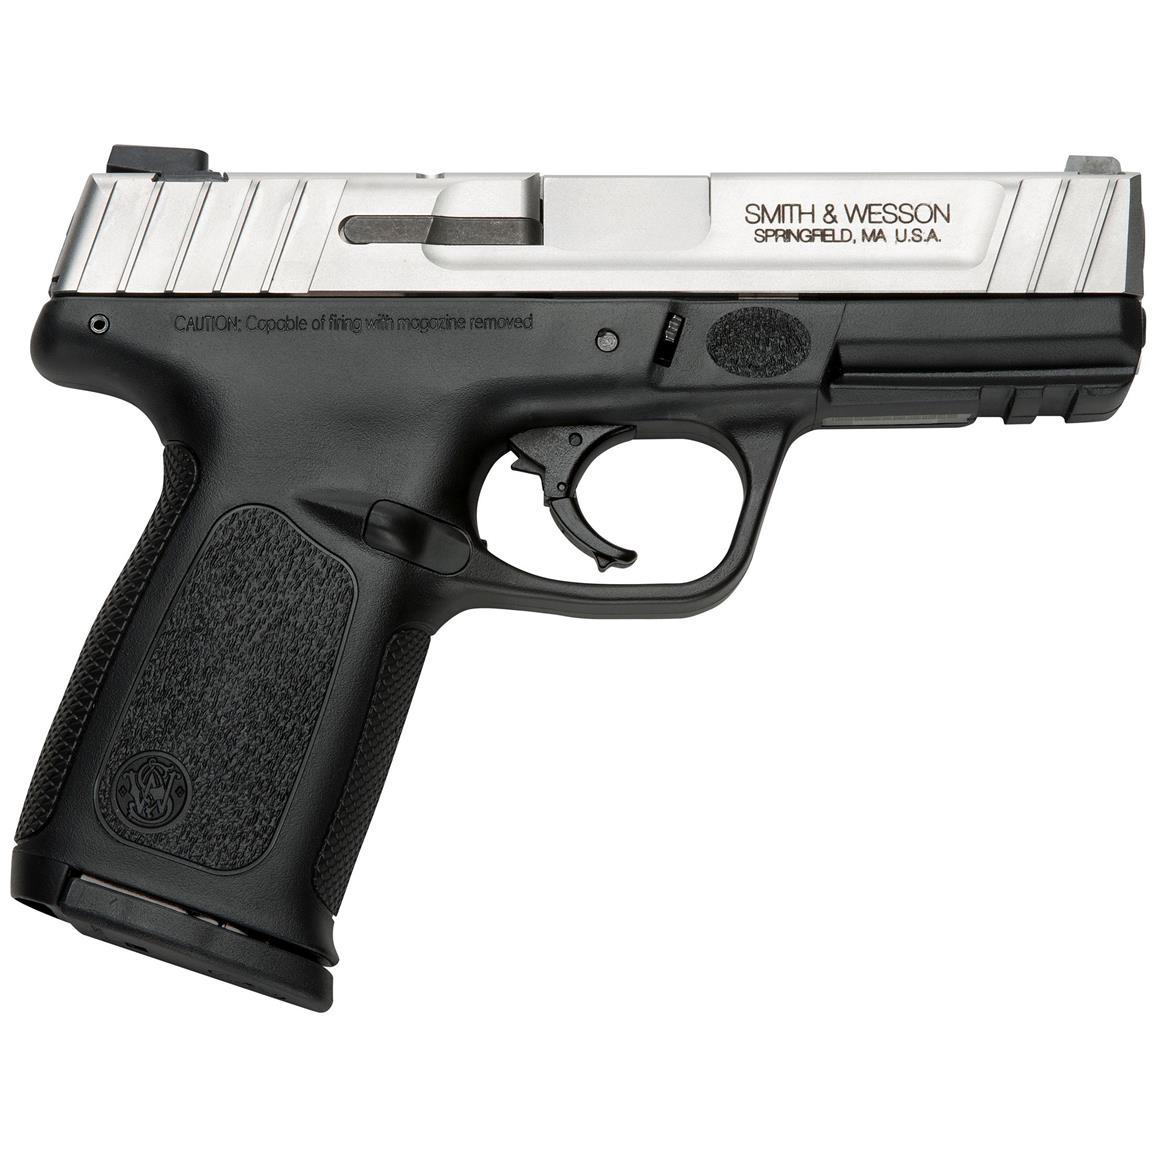 SDT™ 8-lb. self-defense trigger for consistent pull